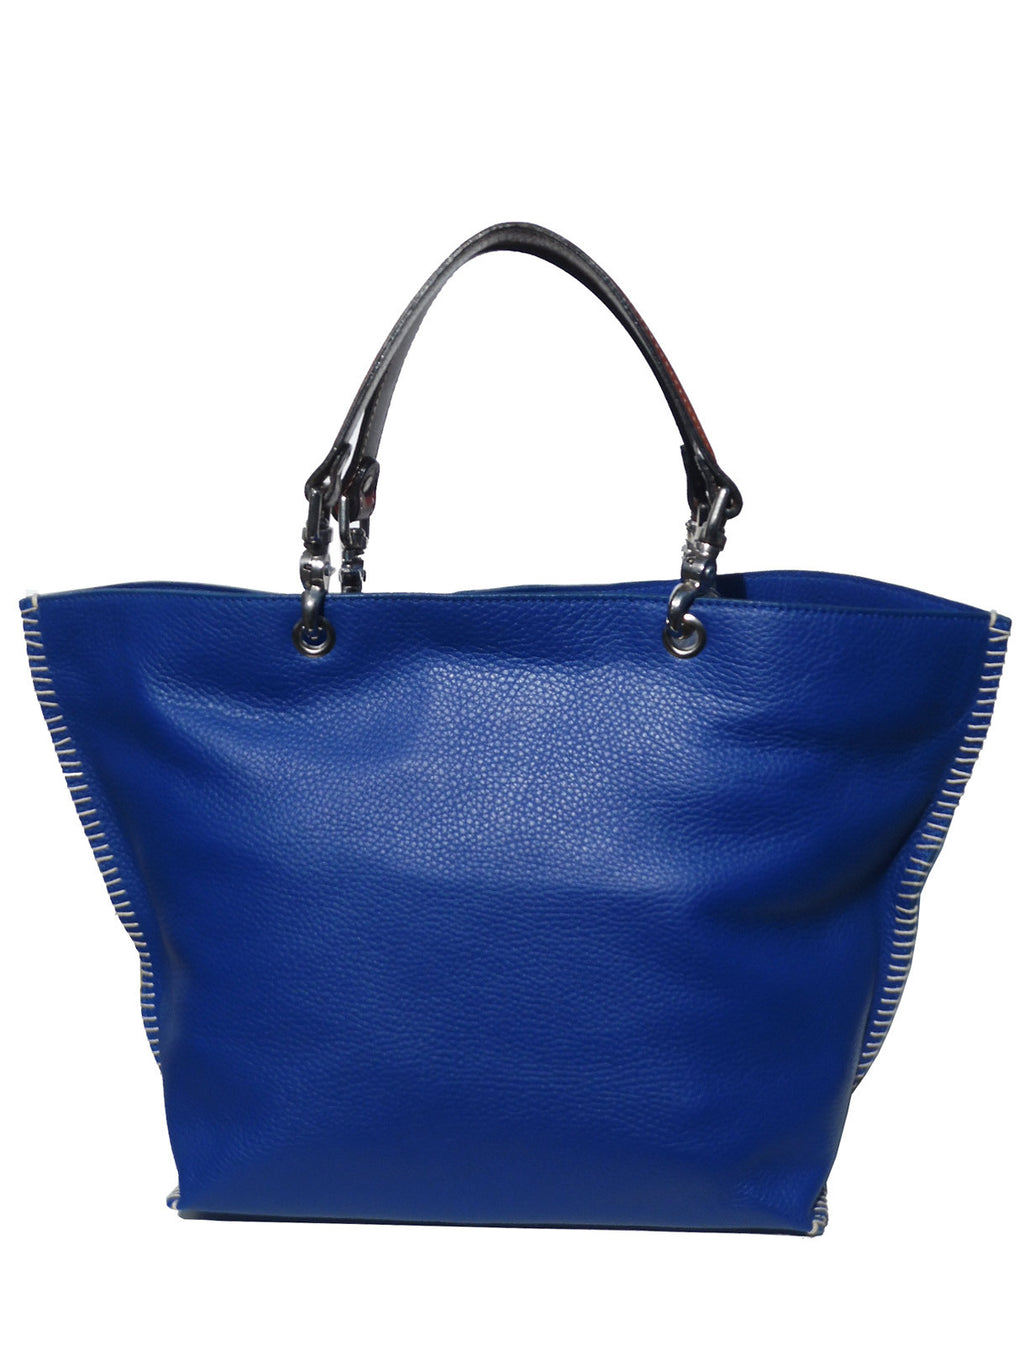 Gamidi 2 Tote In Pebble Grain Leather Cobalt Blue